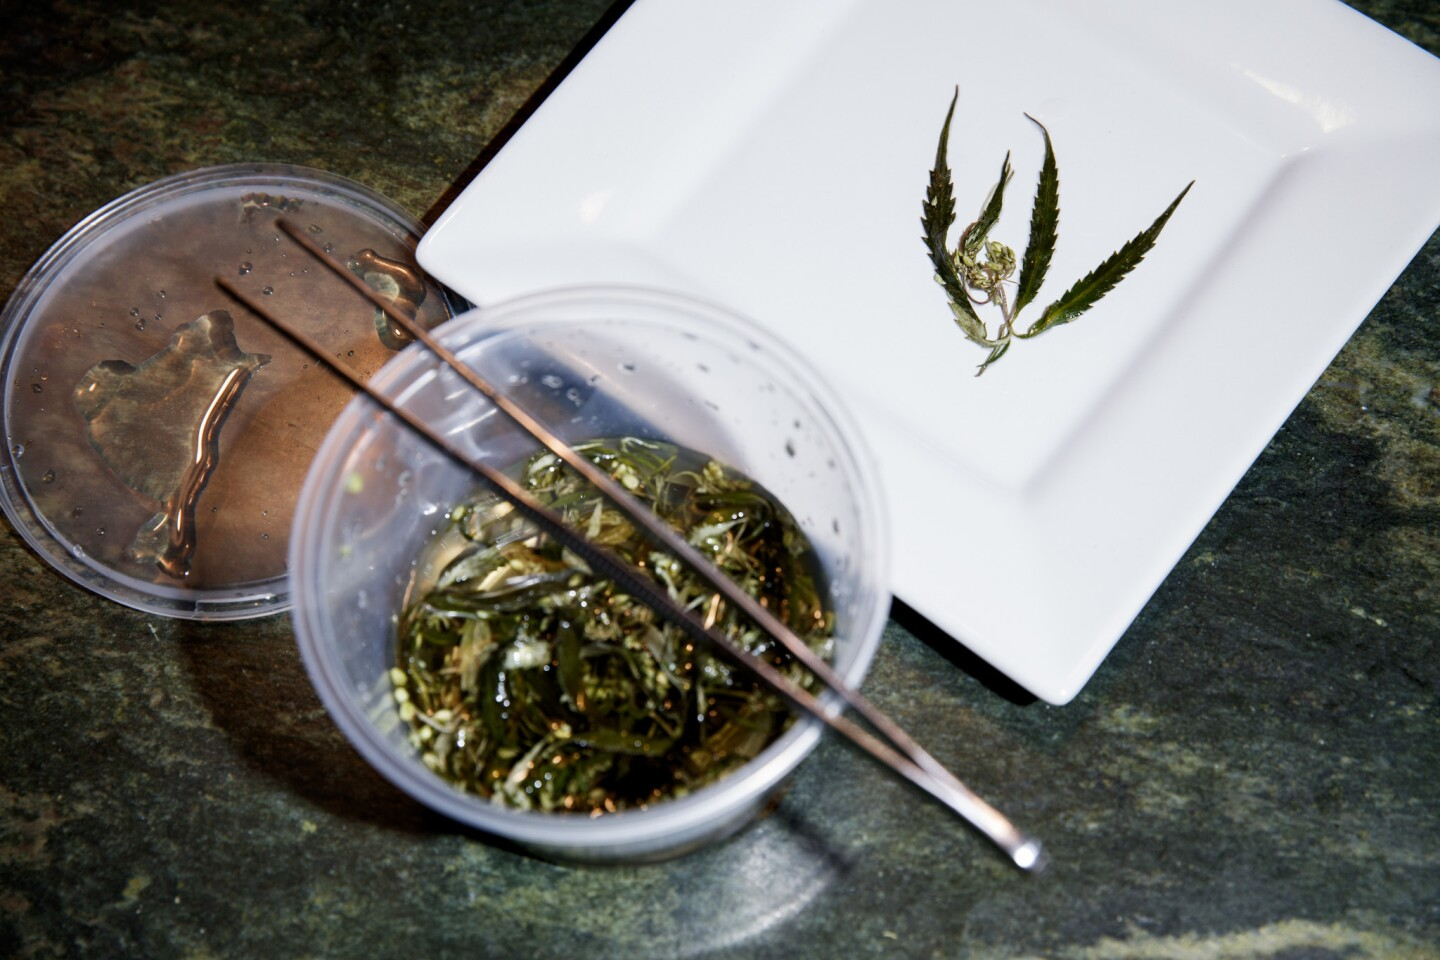 Chef Holden Jagger displays a pickled marijuana leaf before making a dinner showcasing the plant as an ingredient in multiple courses.